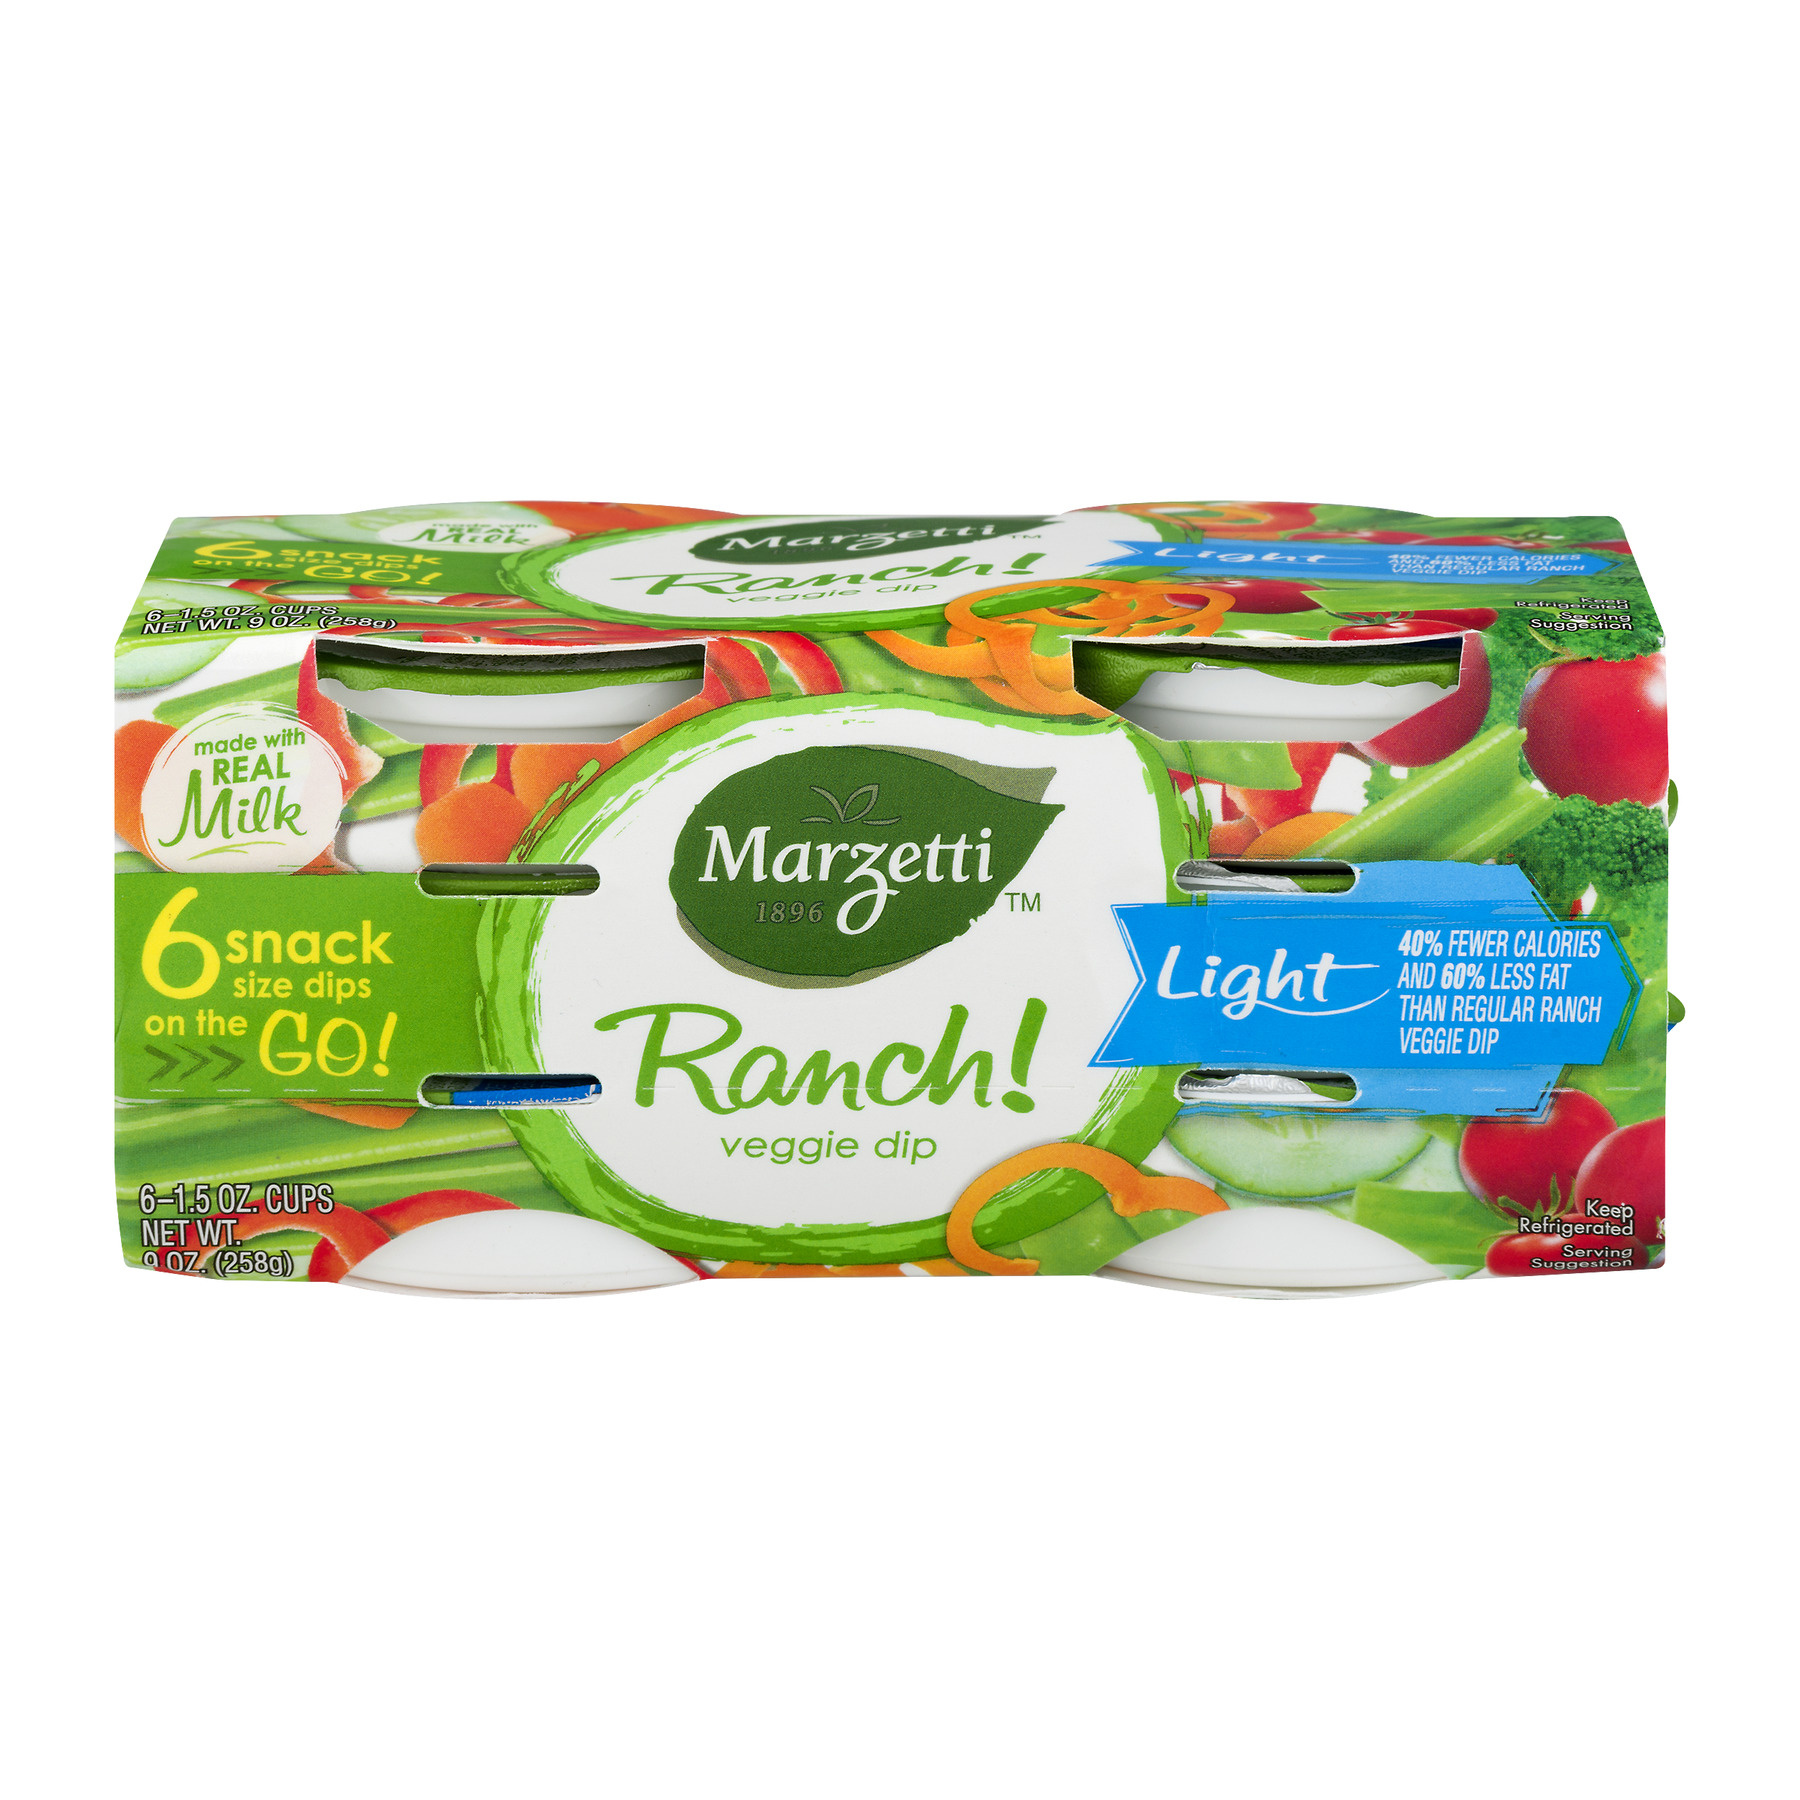 Marzetti® Veggie Dip Light Ranch Singles 6 ct 9 oz. Sleeve